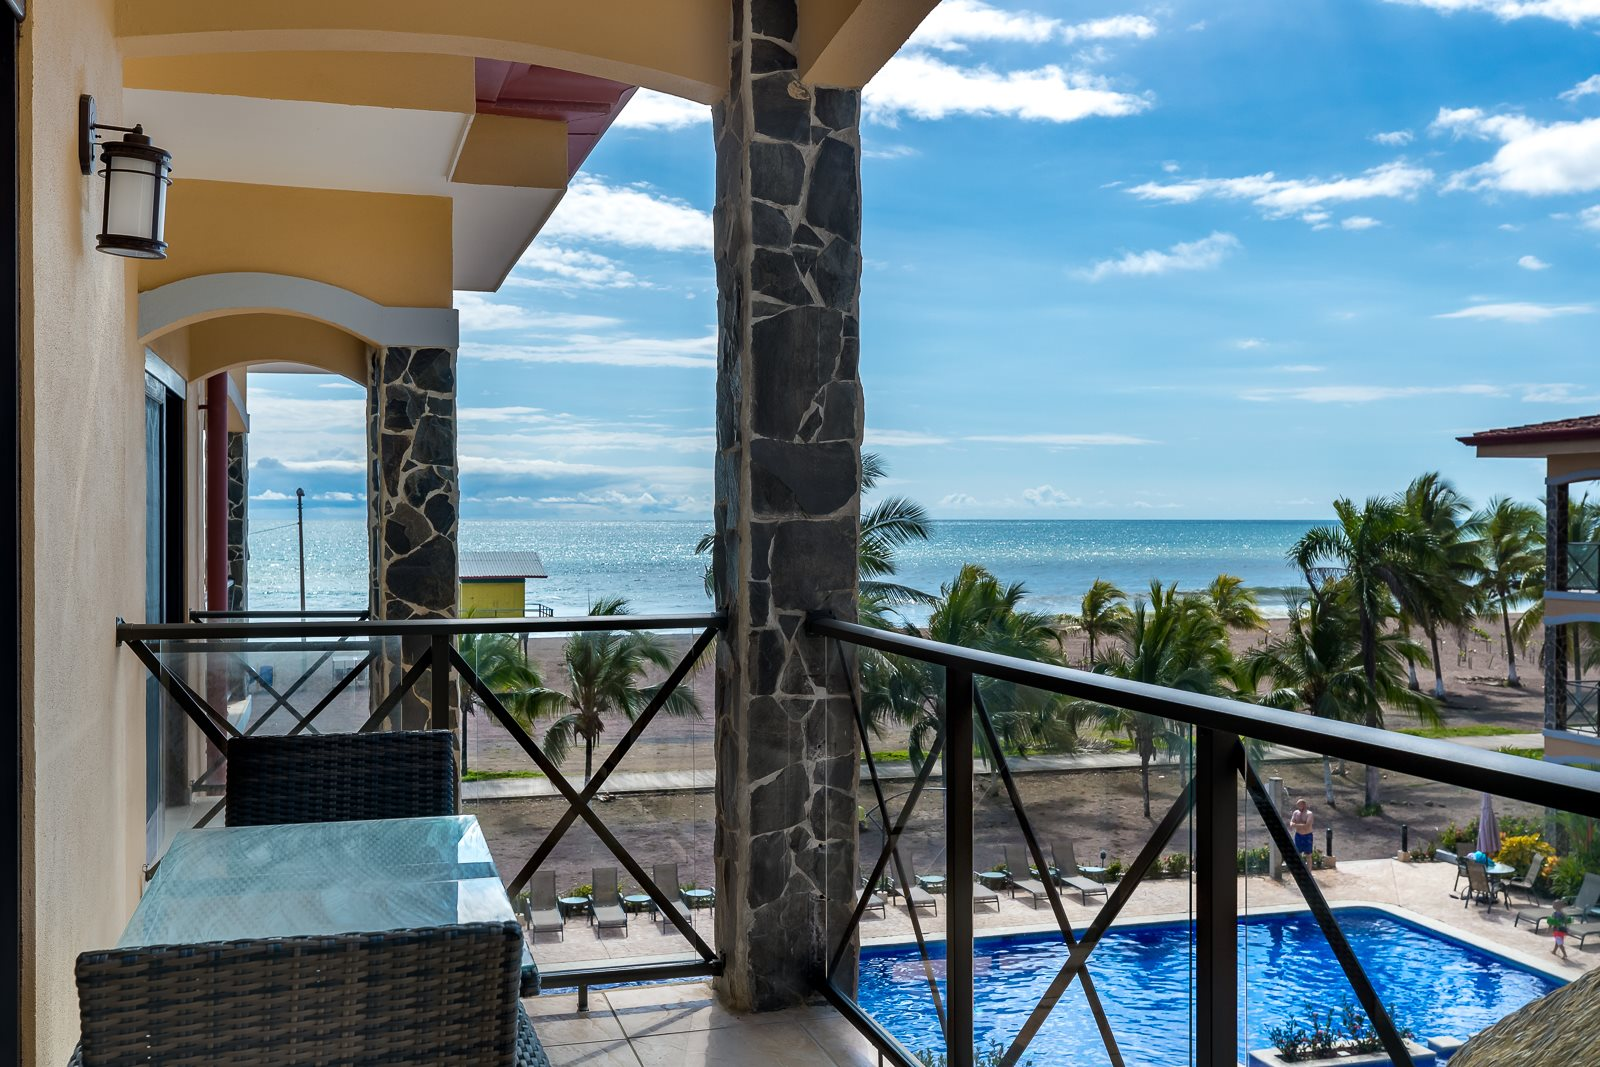 3 Bedroom Ocean Front Condo at Bahia Encantada. Fully Furnished